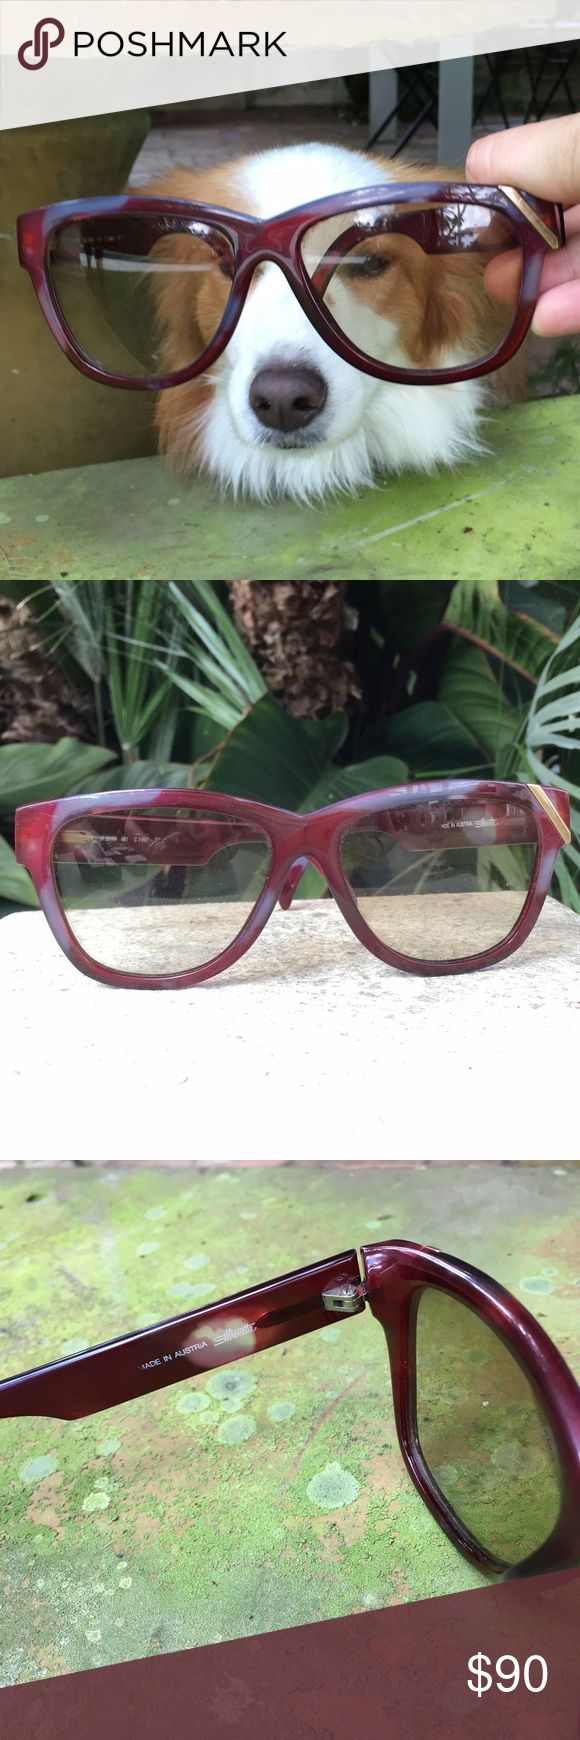 Vintage Silhouette Sunglasses Designer: Silhouette - purple and blue acetate with gold detail- made in Austria - storage scratches on lenses but still ok to see - Celine style sunglasses Accessories Sunglasses